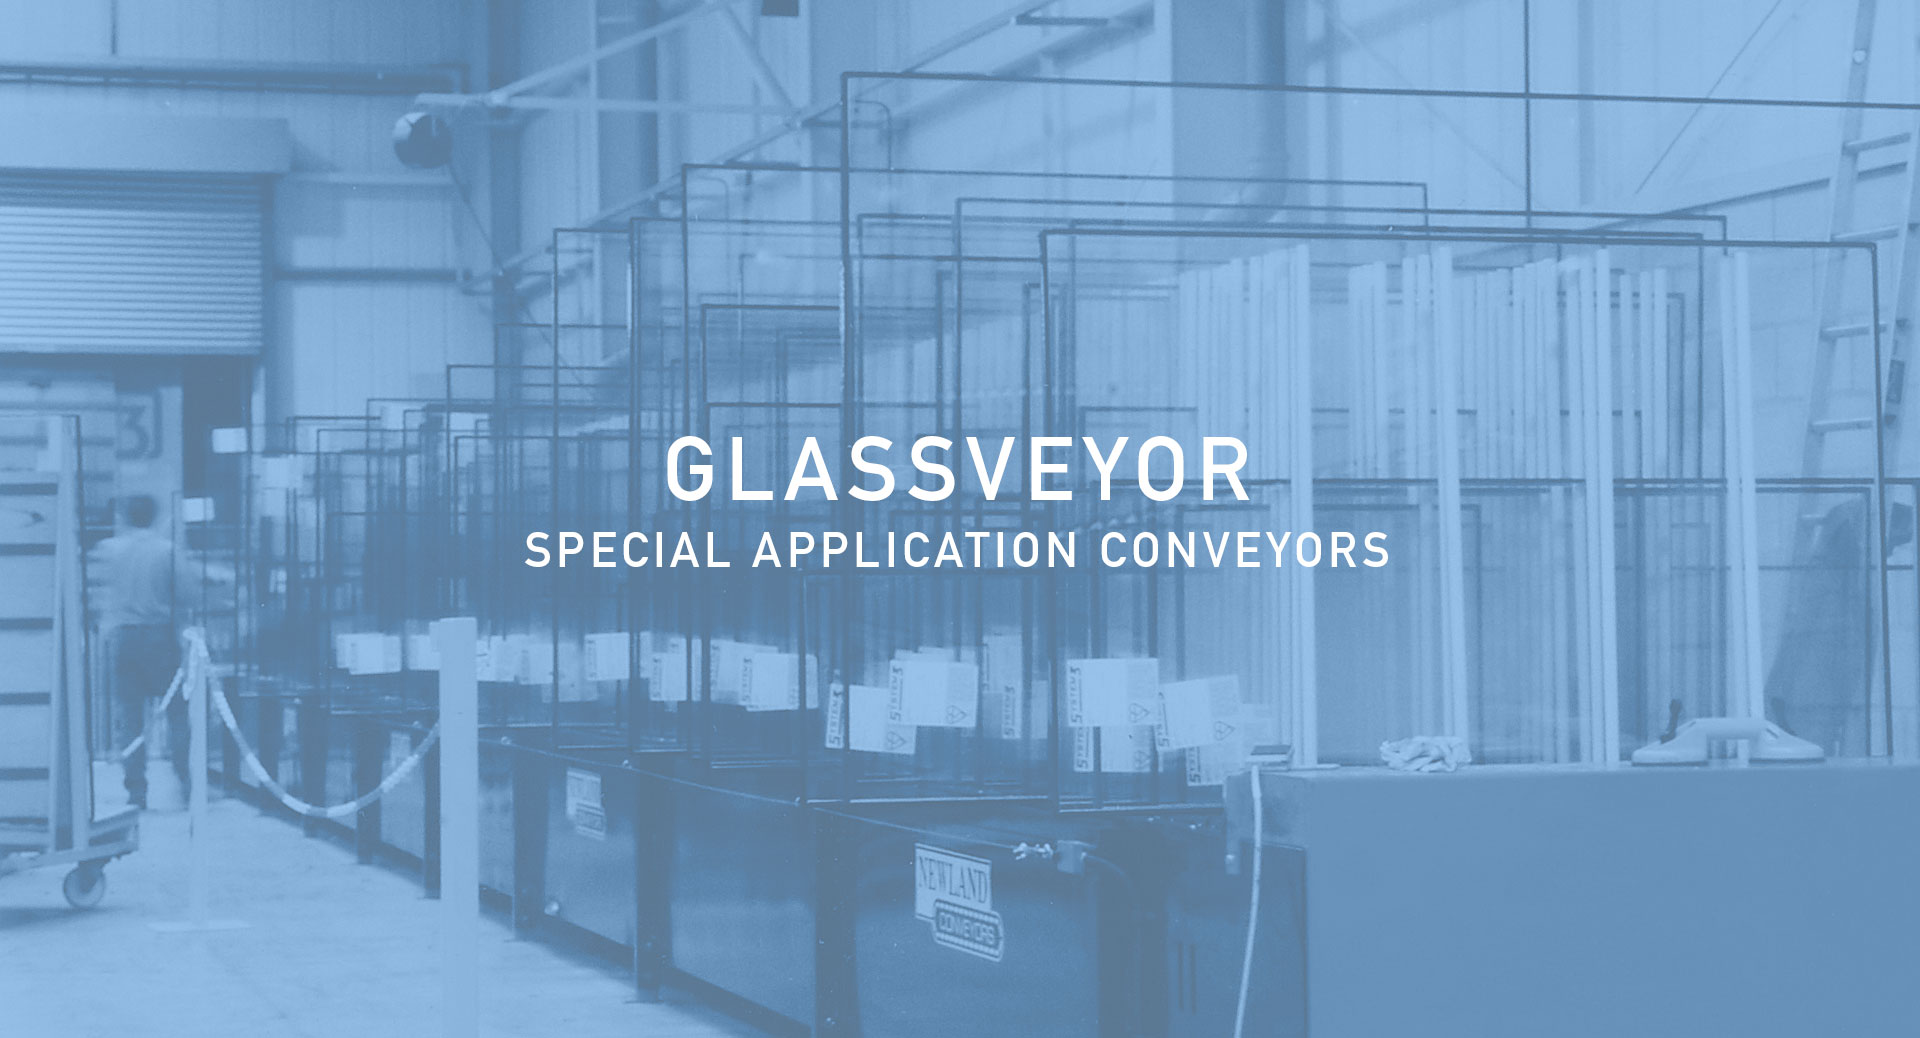 newland can provide conveyors for special applications with glass